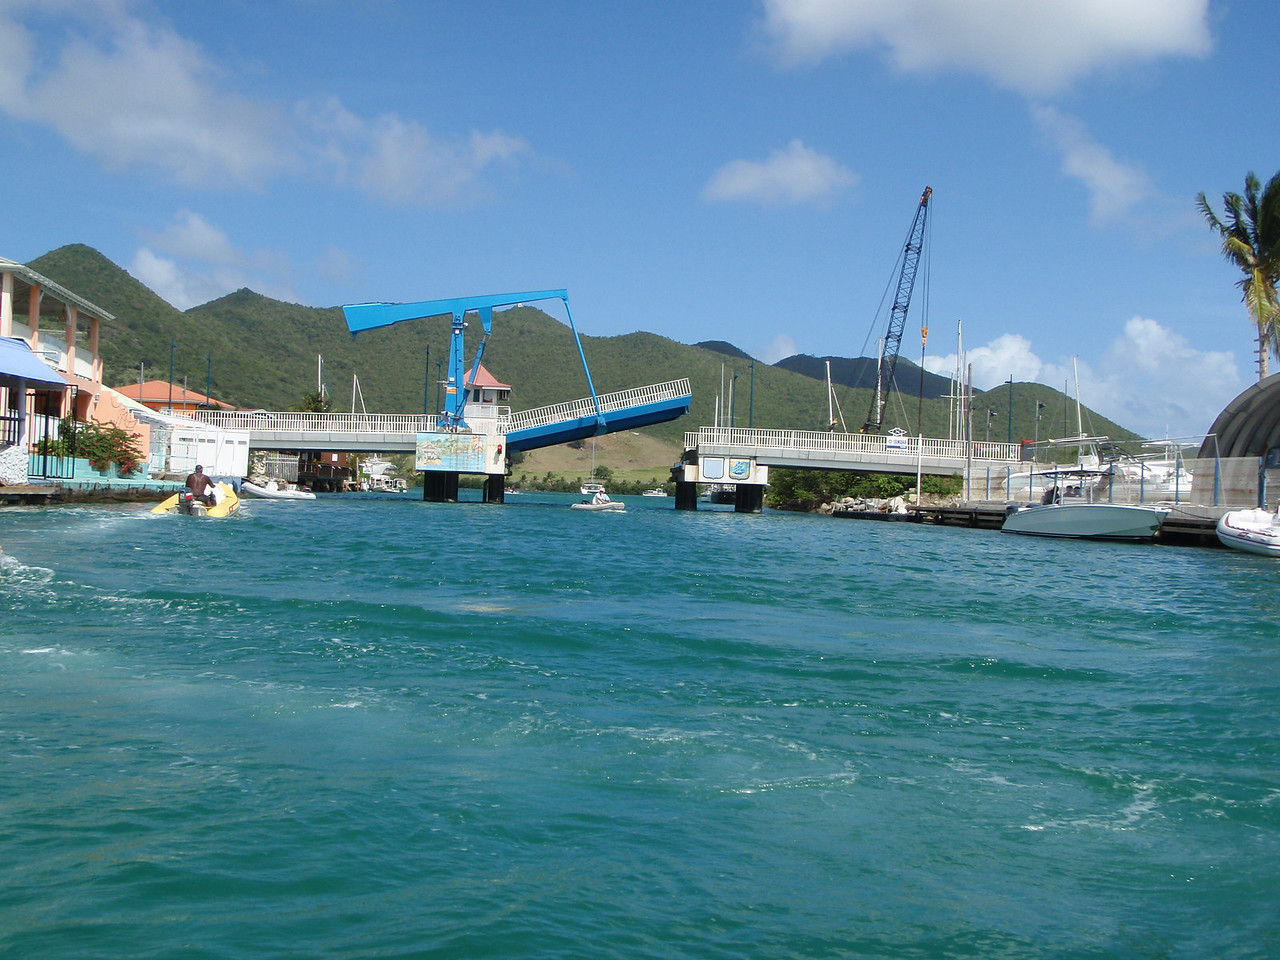 We pass under a draw bridge as we enter Simpson Bay Lagoon.